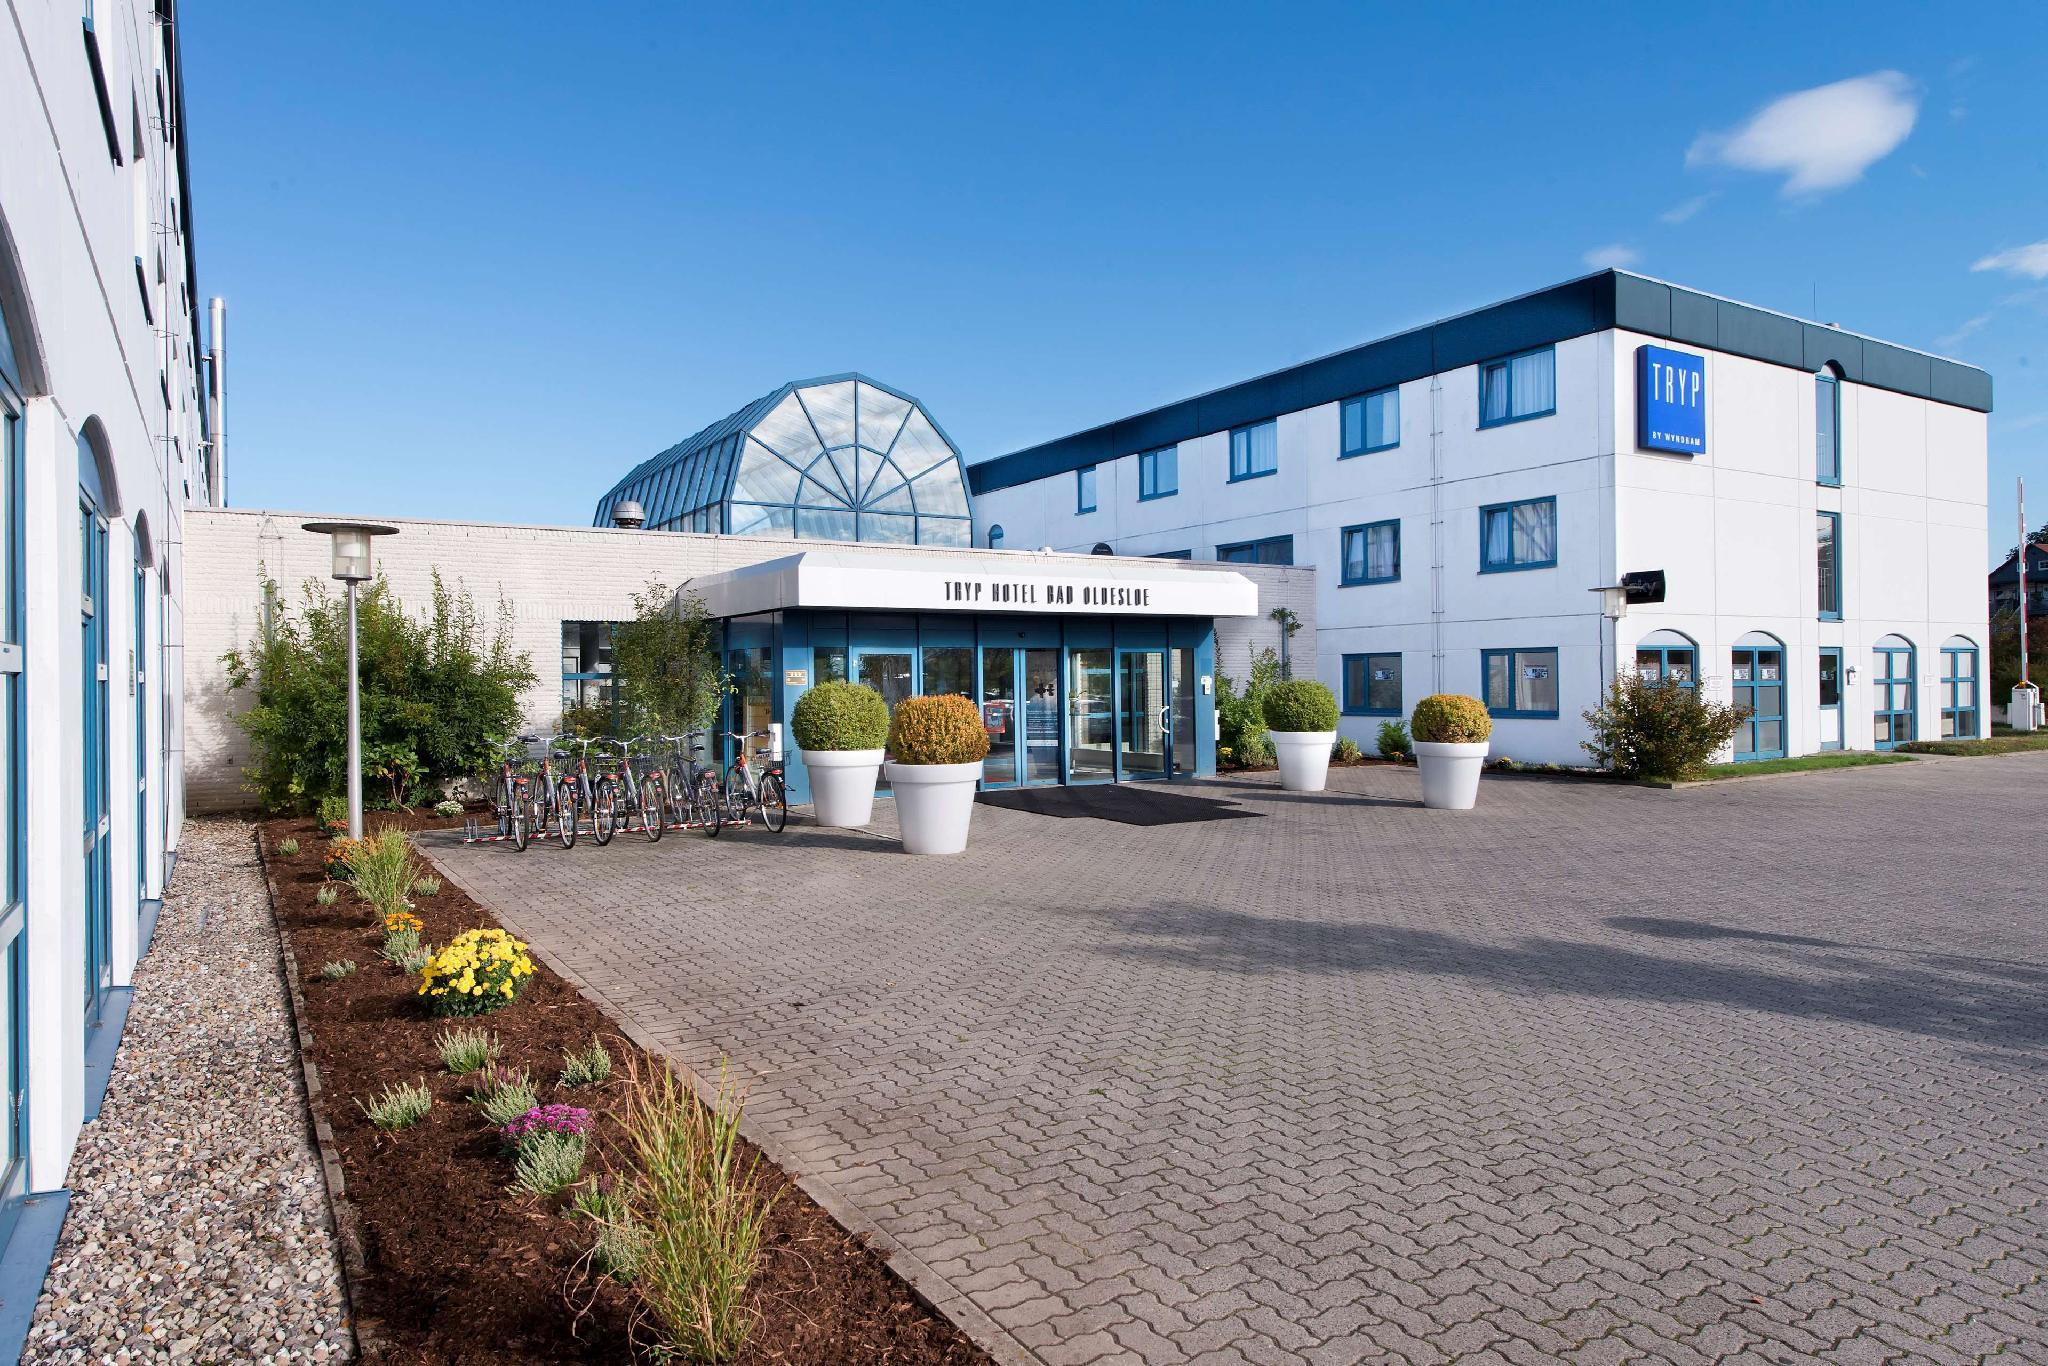 TRYP by Wyndham Bad Oldesloe, Stormarn